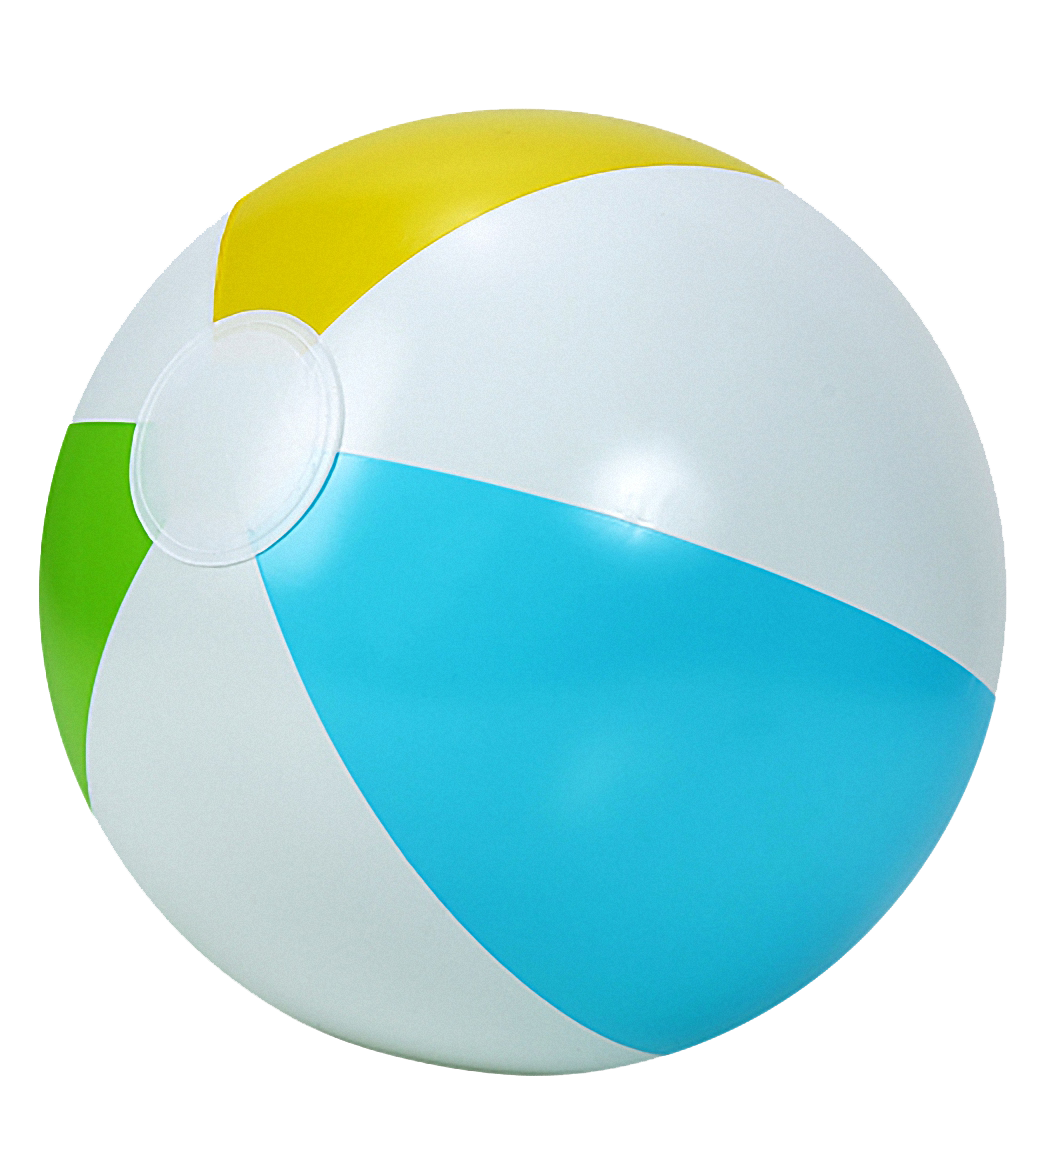 Swimming pool ball png. Photos mart